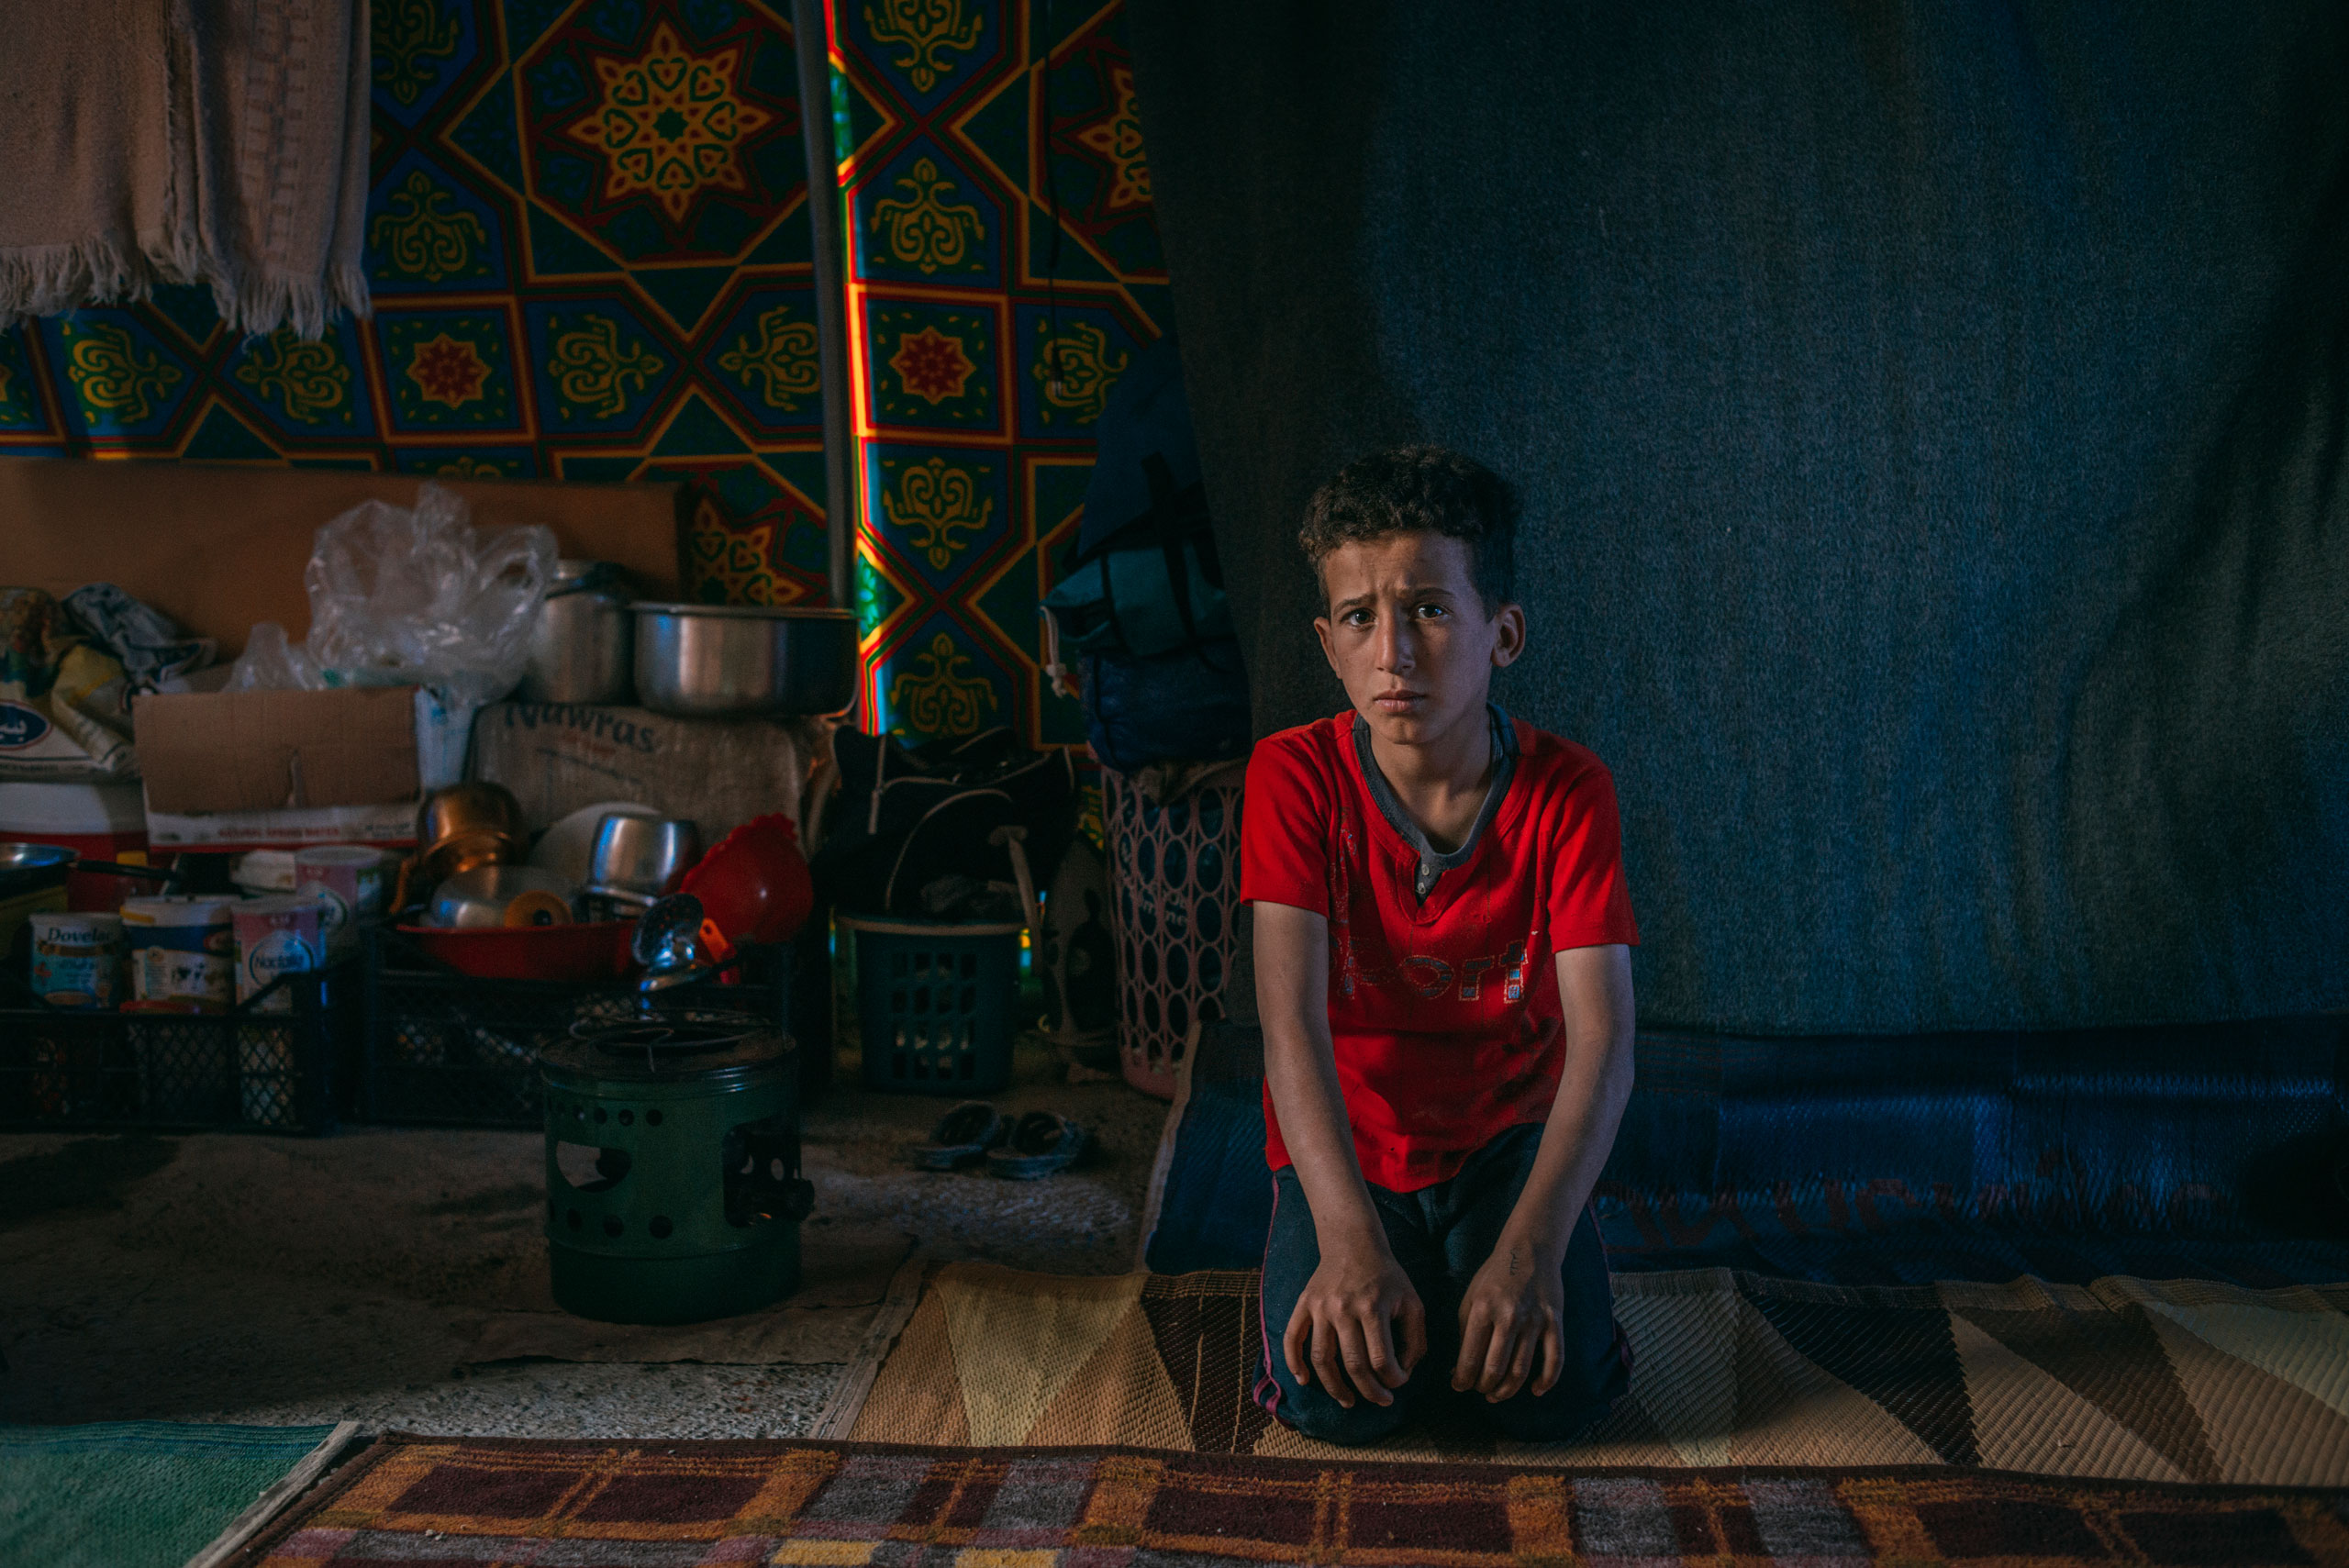 Hassan Falah Hamid, 10, lives in the Hamam al-Alil displacement camp south of Mosul. On April 6, 2017, he answered a few questions about his recent days in this war zone. His most recent meal? Fava beans. What does he think about at night? He was afraid of ISIS and the shelling. His favorite toy? He doesn't have toys in the camp, but back at home it was a bicycle. What does he want to be when he grows up? A teacher.